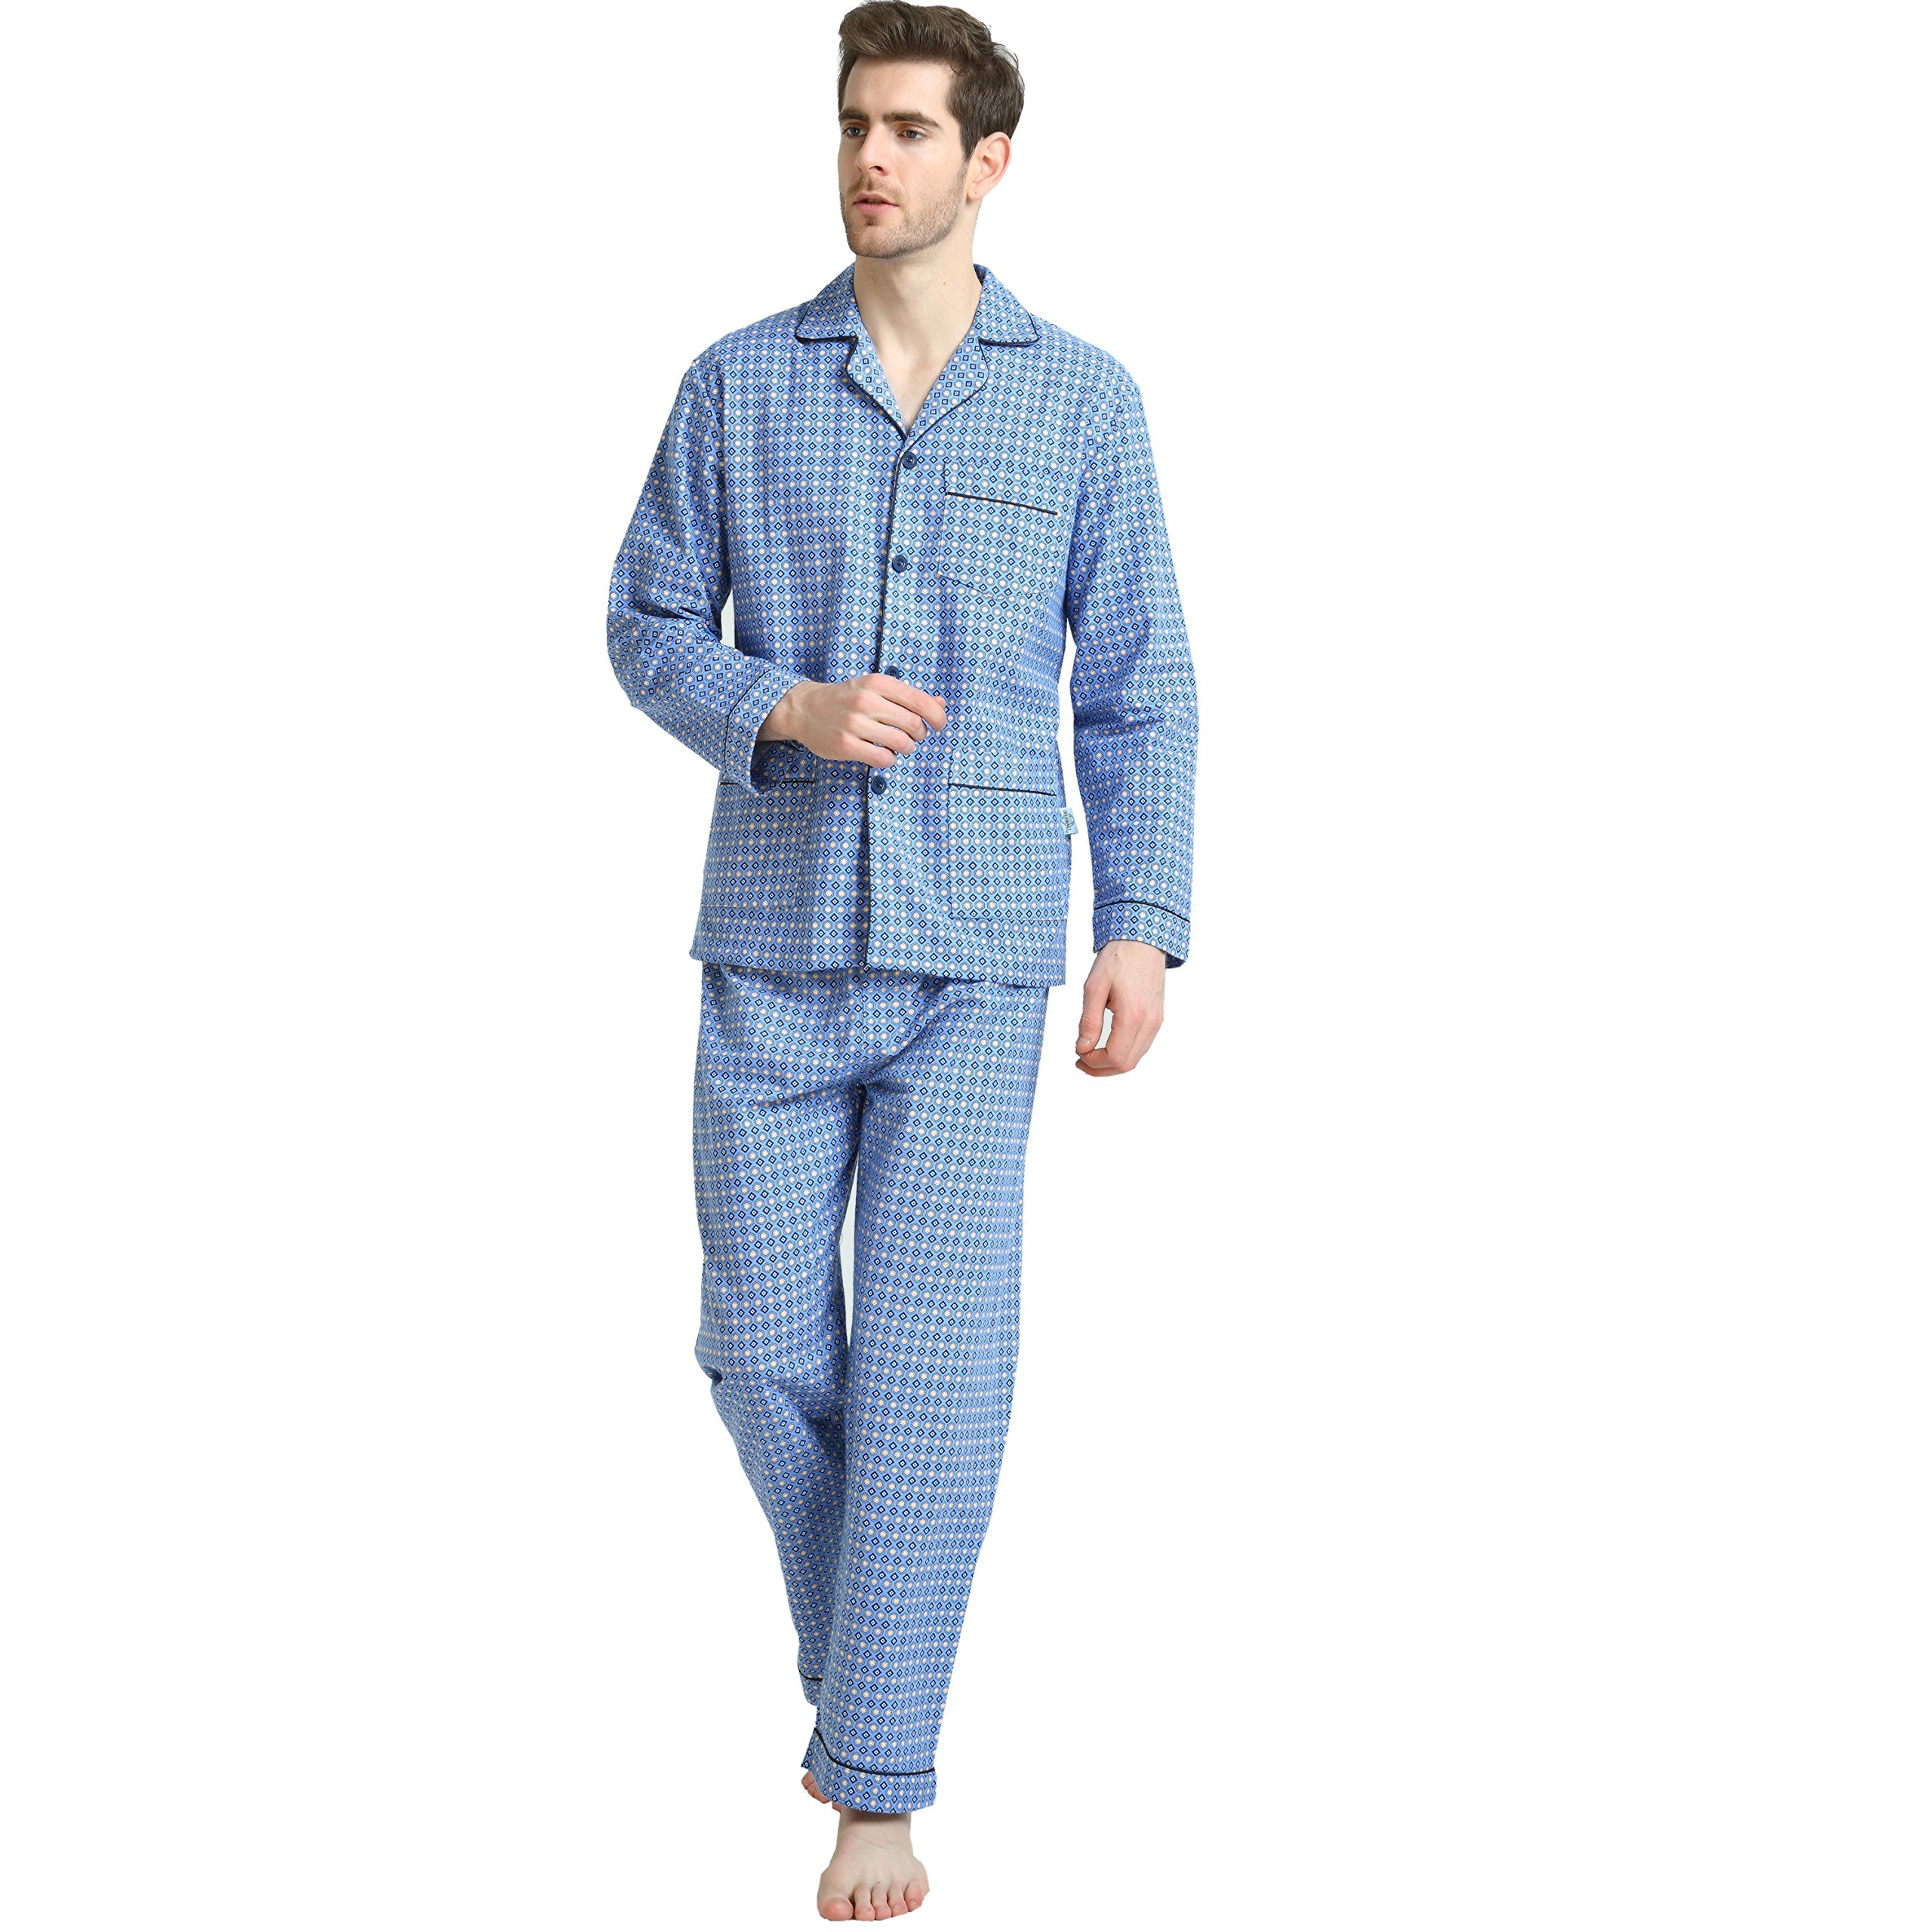 Cotton Sleepwear/Loungewear Sets for Men,100% Fleece Warm Pj Top and Bottom by GLOBAL (Image #5)